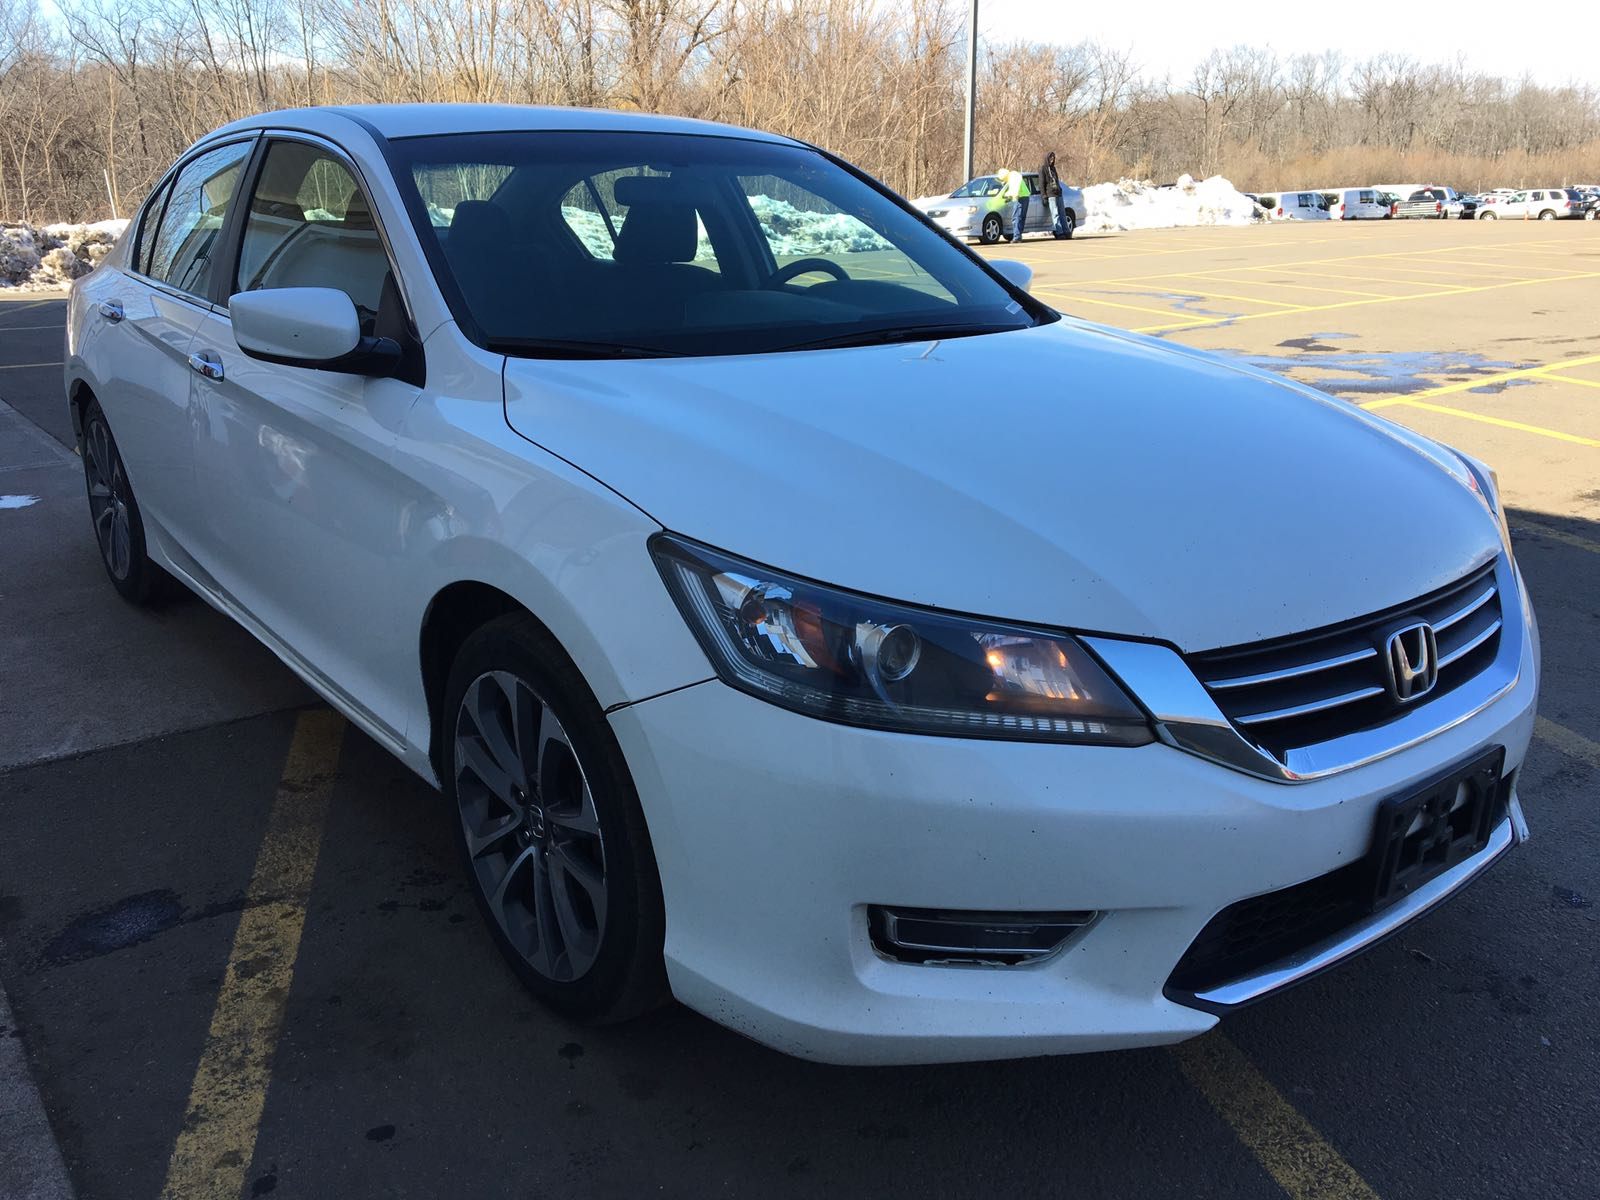 2013 honda accord sport for sale at copart new britain ct. Black Bedroom Furniture Sets. Home Design Ideas